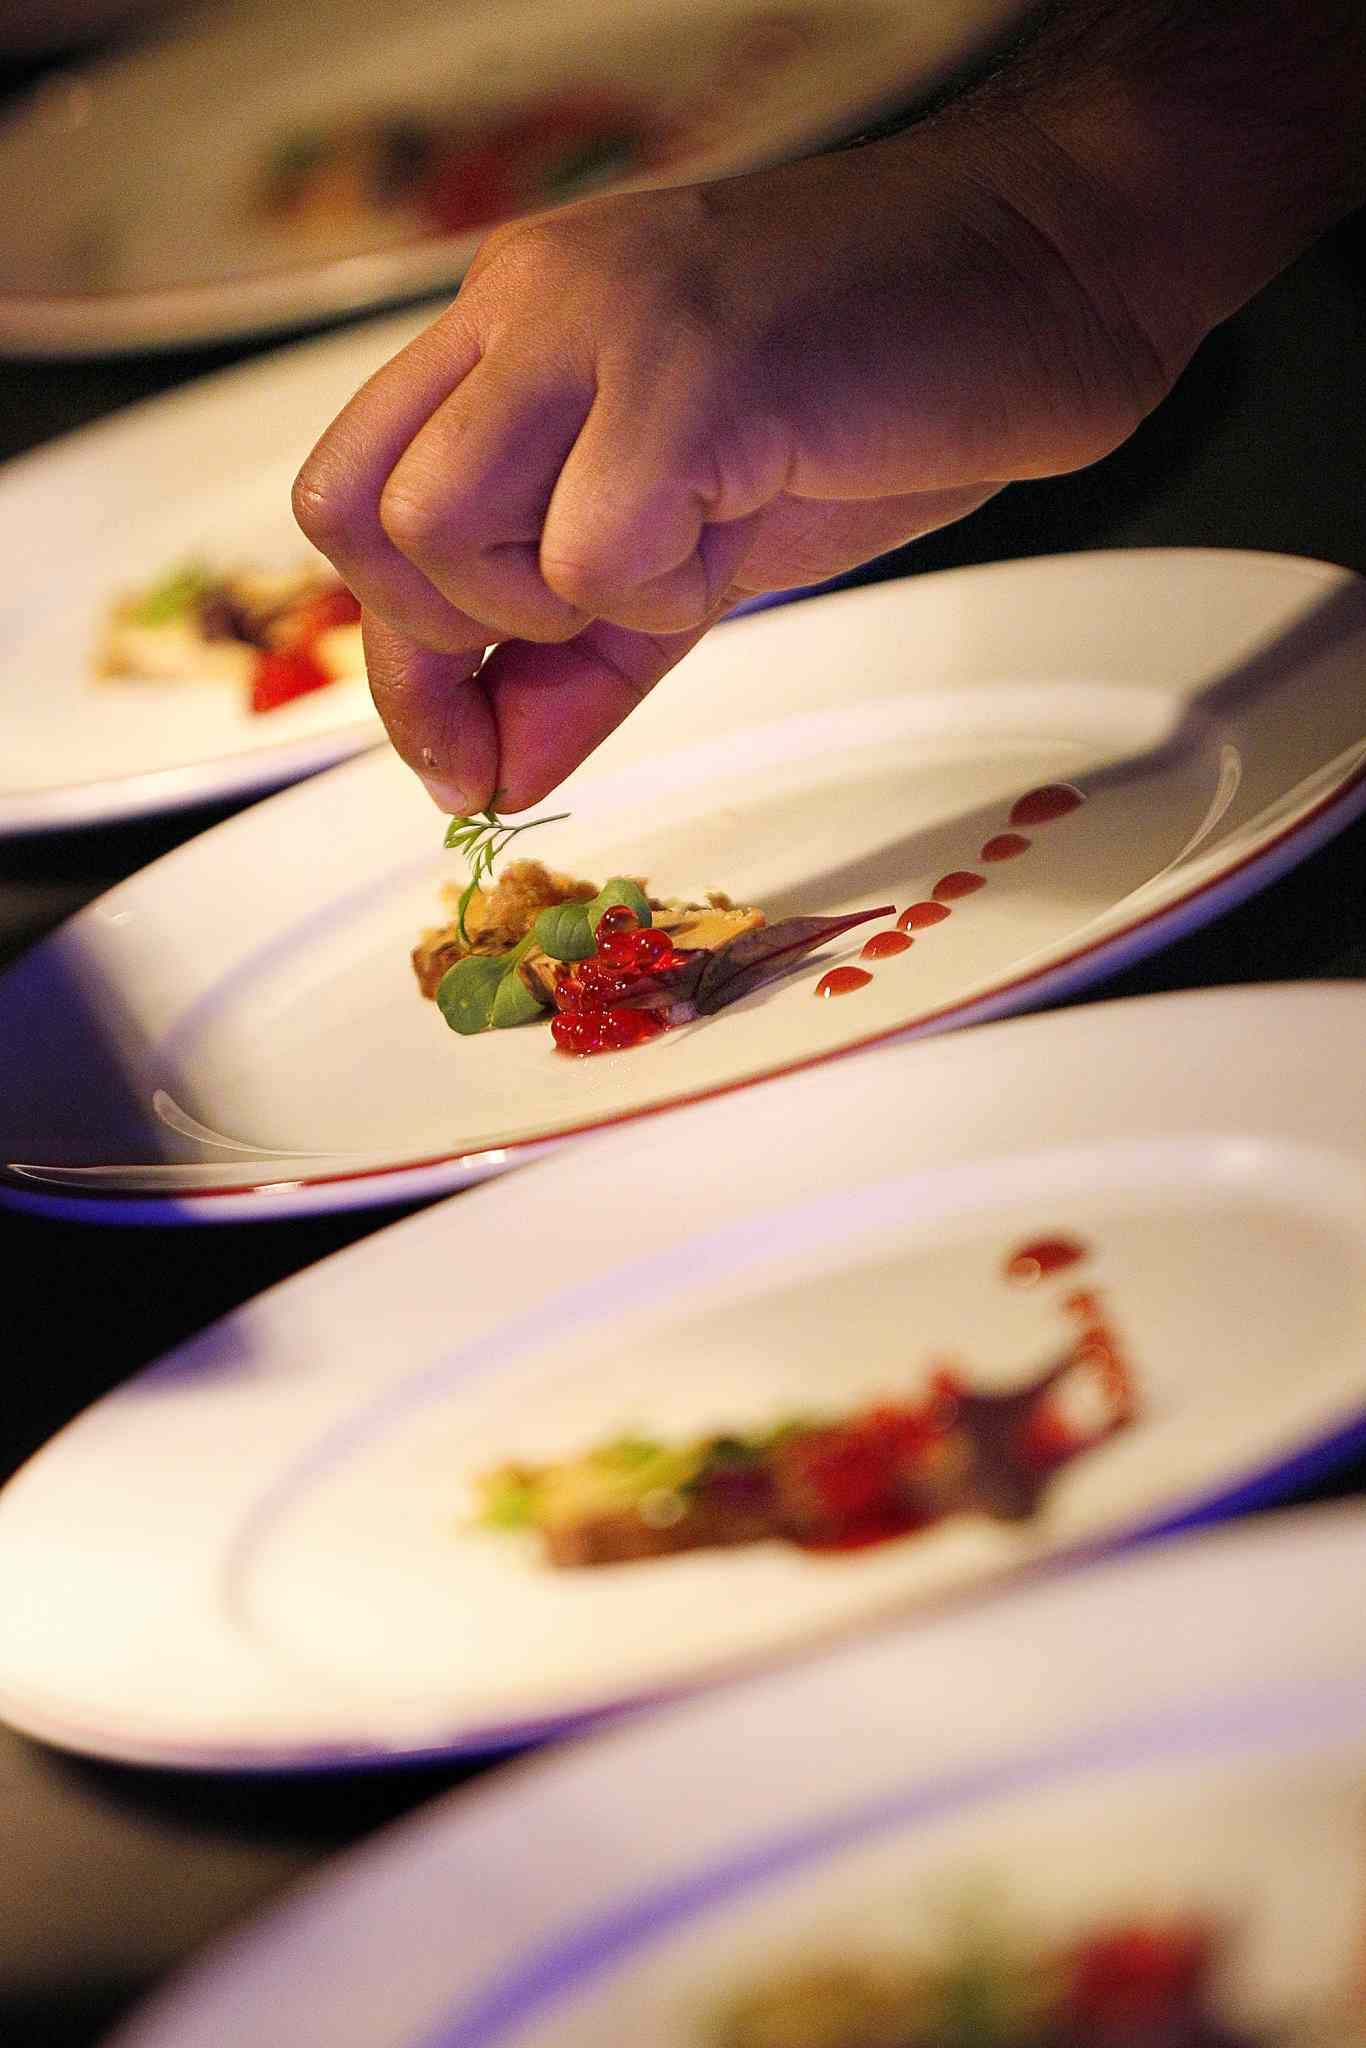 A chef puts the finishing touches on an appetizer dish.